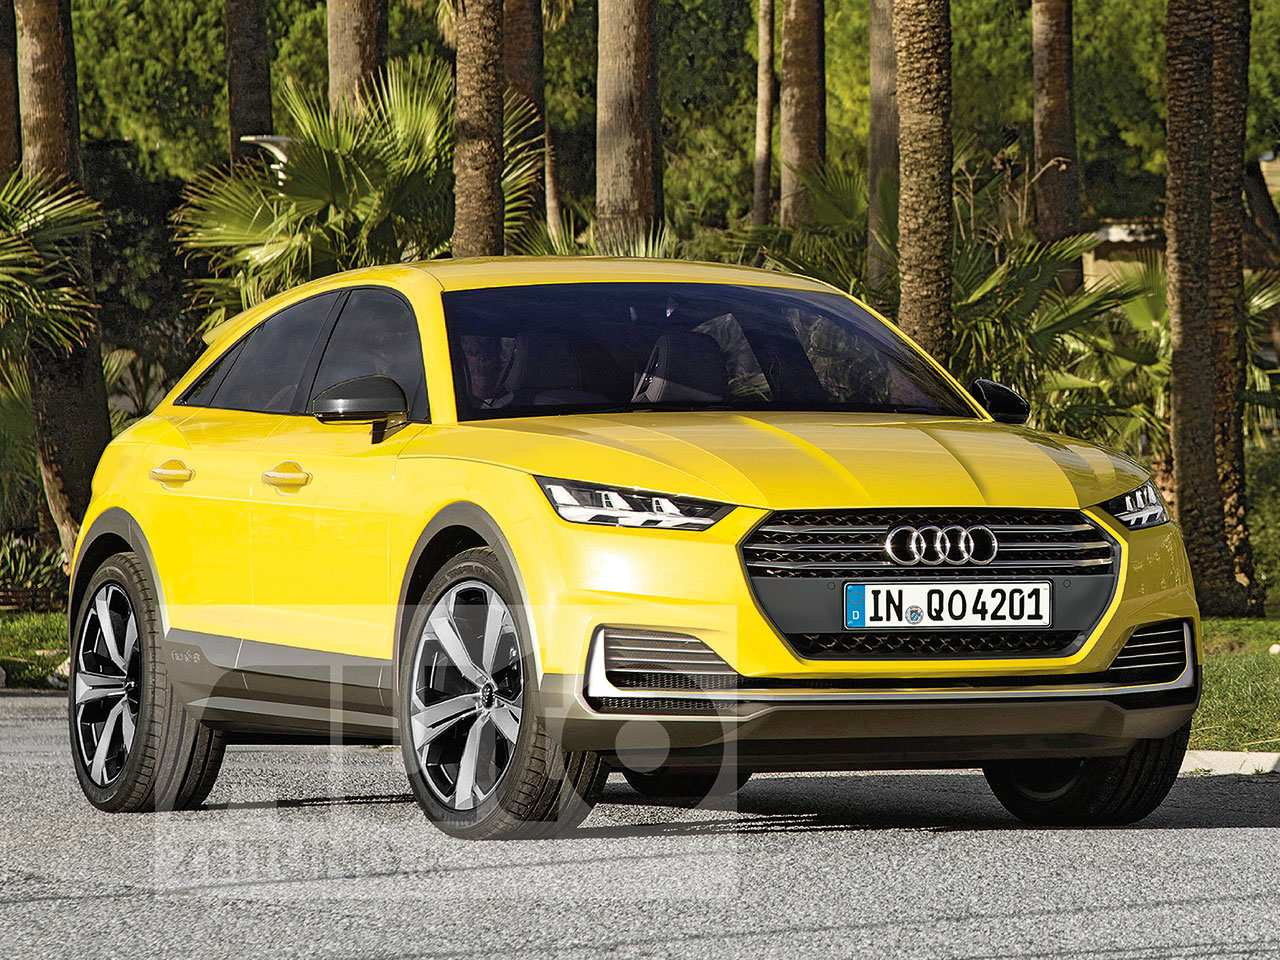 77 All New Audi Neue Modelle Bis 2020 Pricing